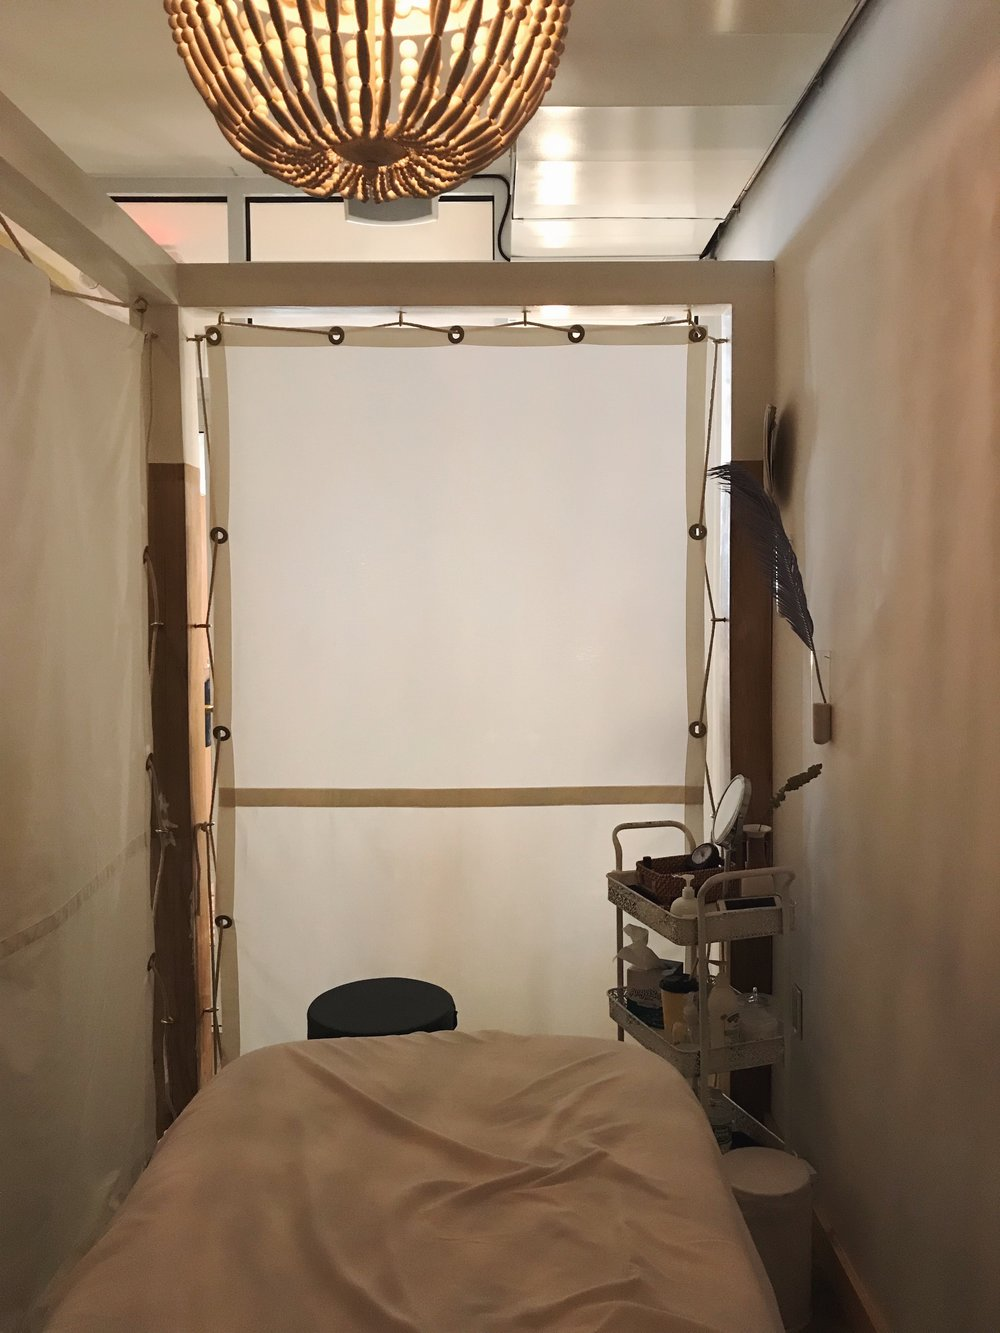 The Massage Space - This was the private room for massages. The minimalist detailing was wonderful. It certainly felt remote and like my own little home. The light fixture cast this dreamy glow that made me want to curl up and nap. Also, can I get that cart in my life?